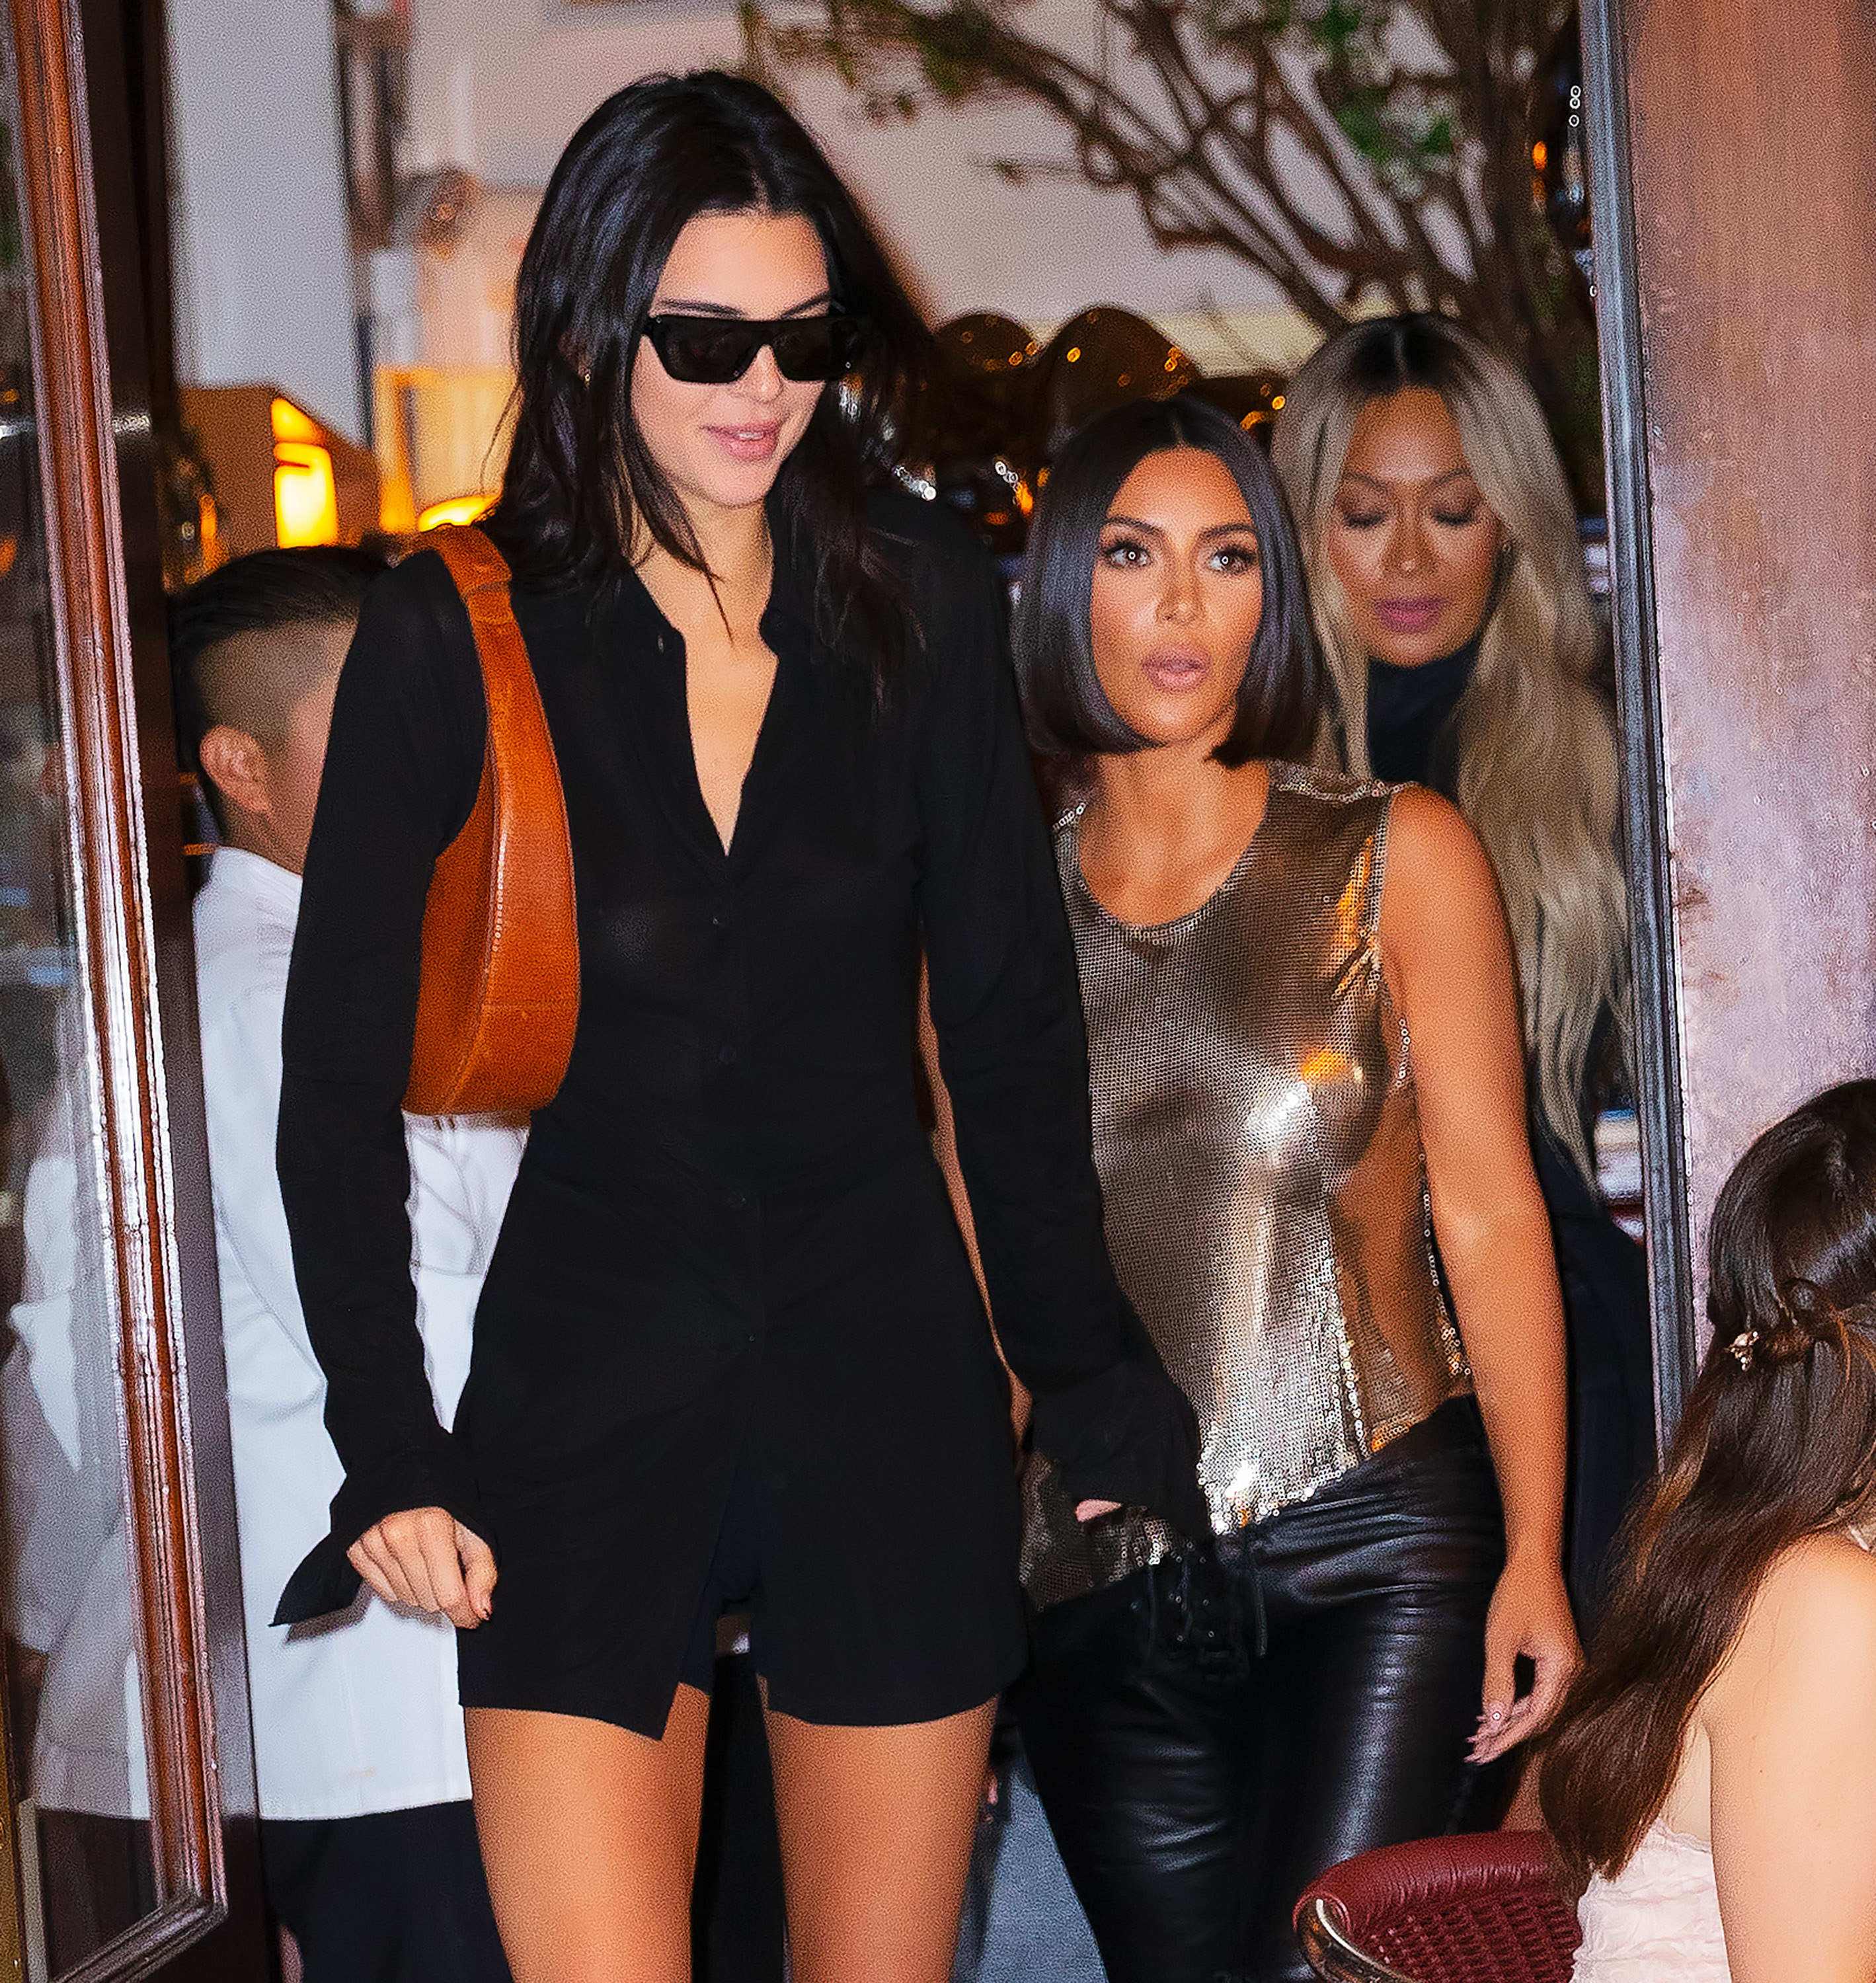 Kendall and Kim exiting a restaurant together in September 2019